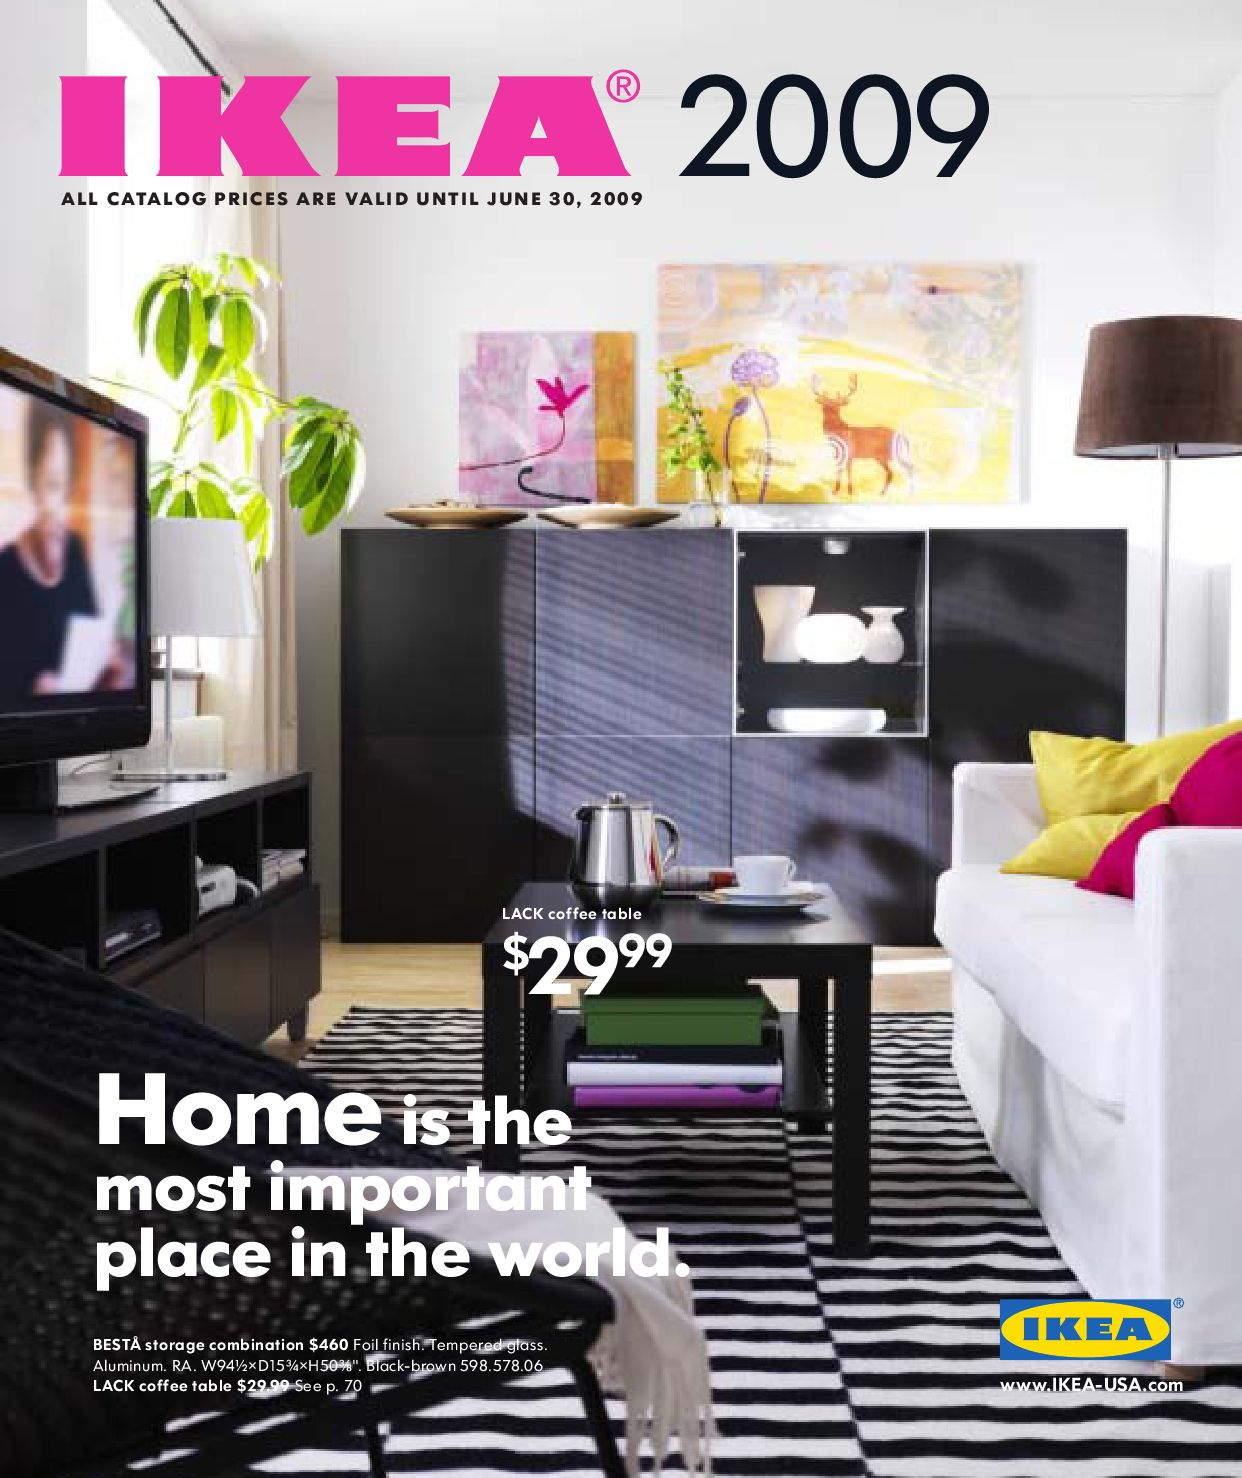 Ikea Showroom Travelers: IKEA 2009 Catalogue By Muhammad Mansour